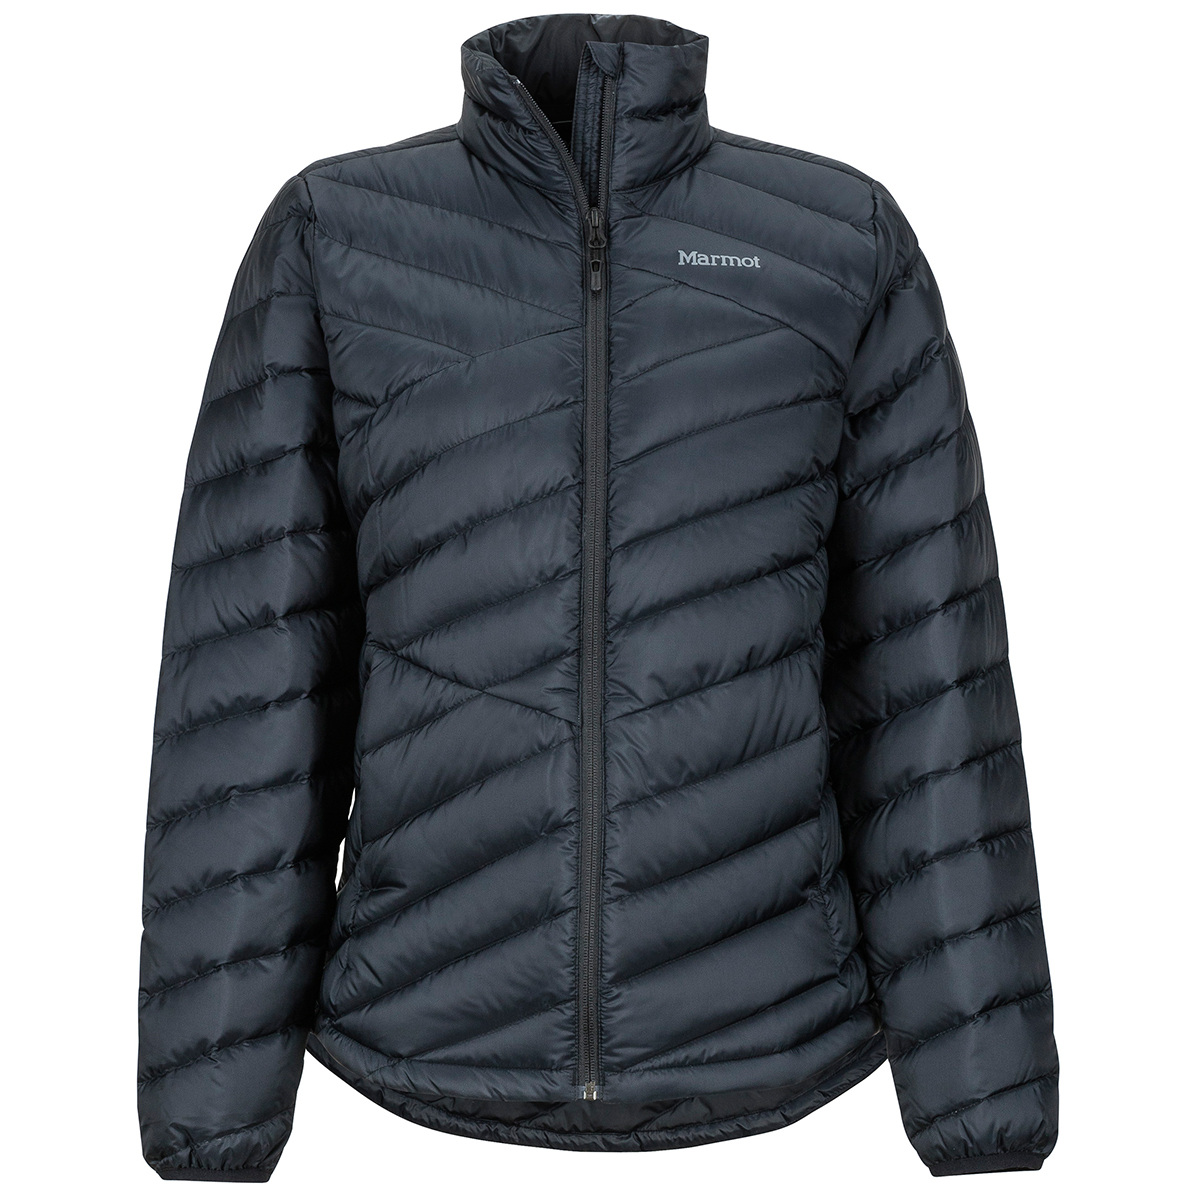 Marmot Women's Highlander Jacket - Black, S